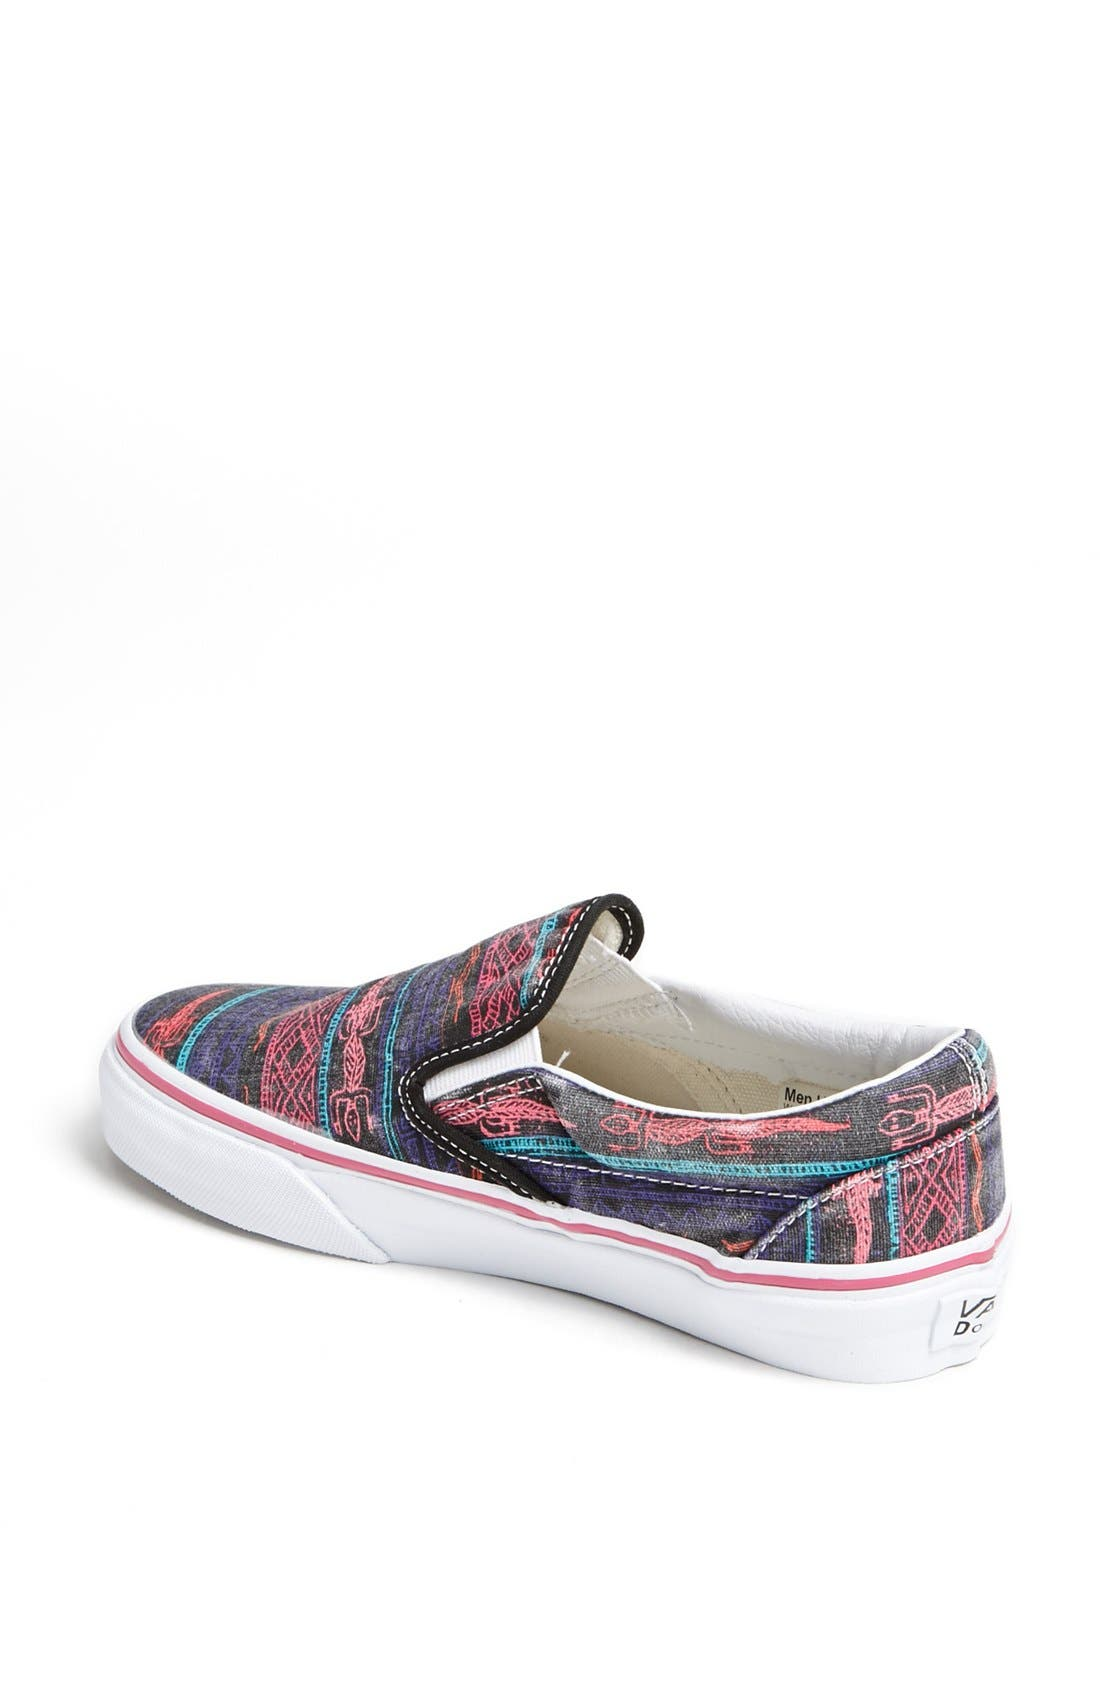 Alternate Image 2  - Vans 'Van Doren' Slip-On Sneaker (Women)